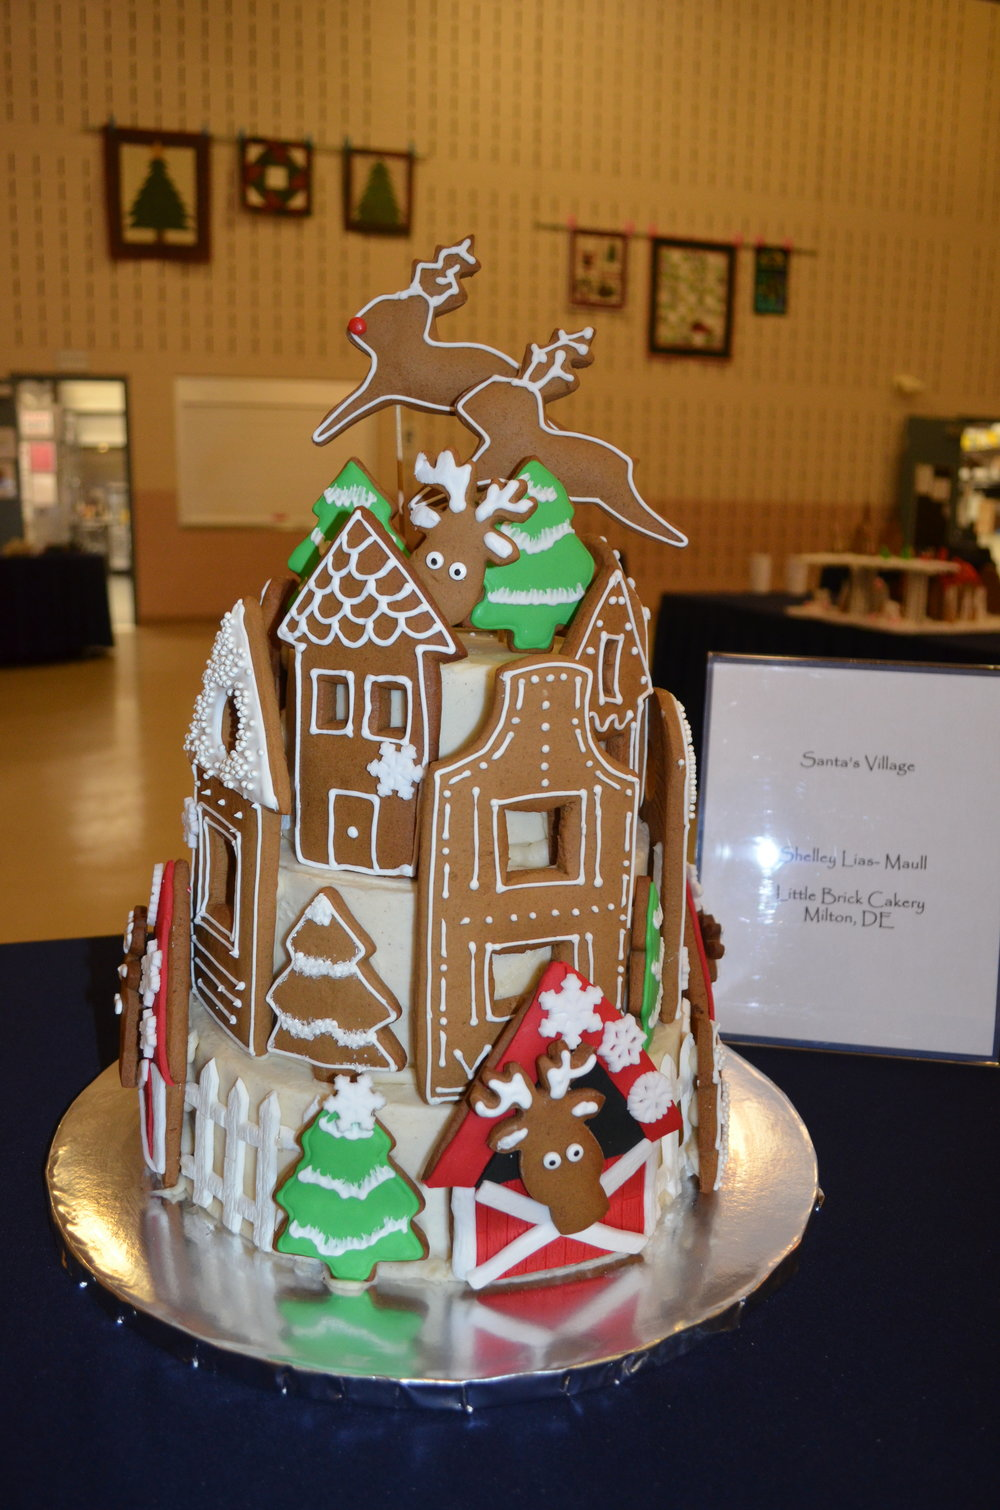 "'Santa's Village"" - Shelley Lias-Maull, Little Brick Cakery, Milton, DE"